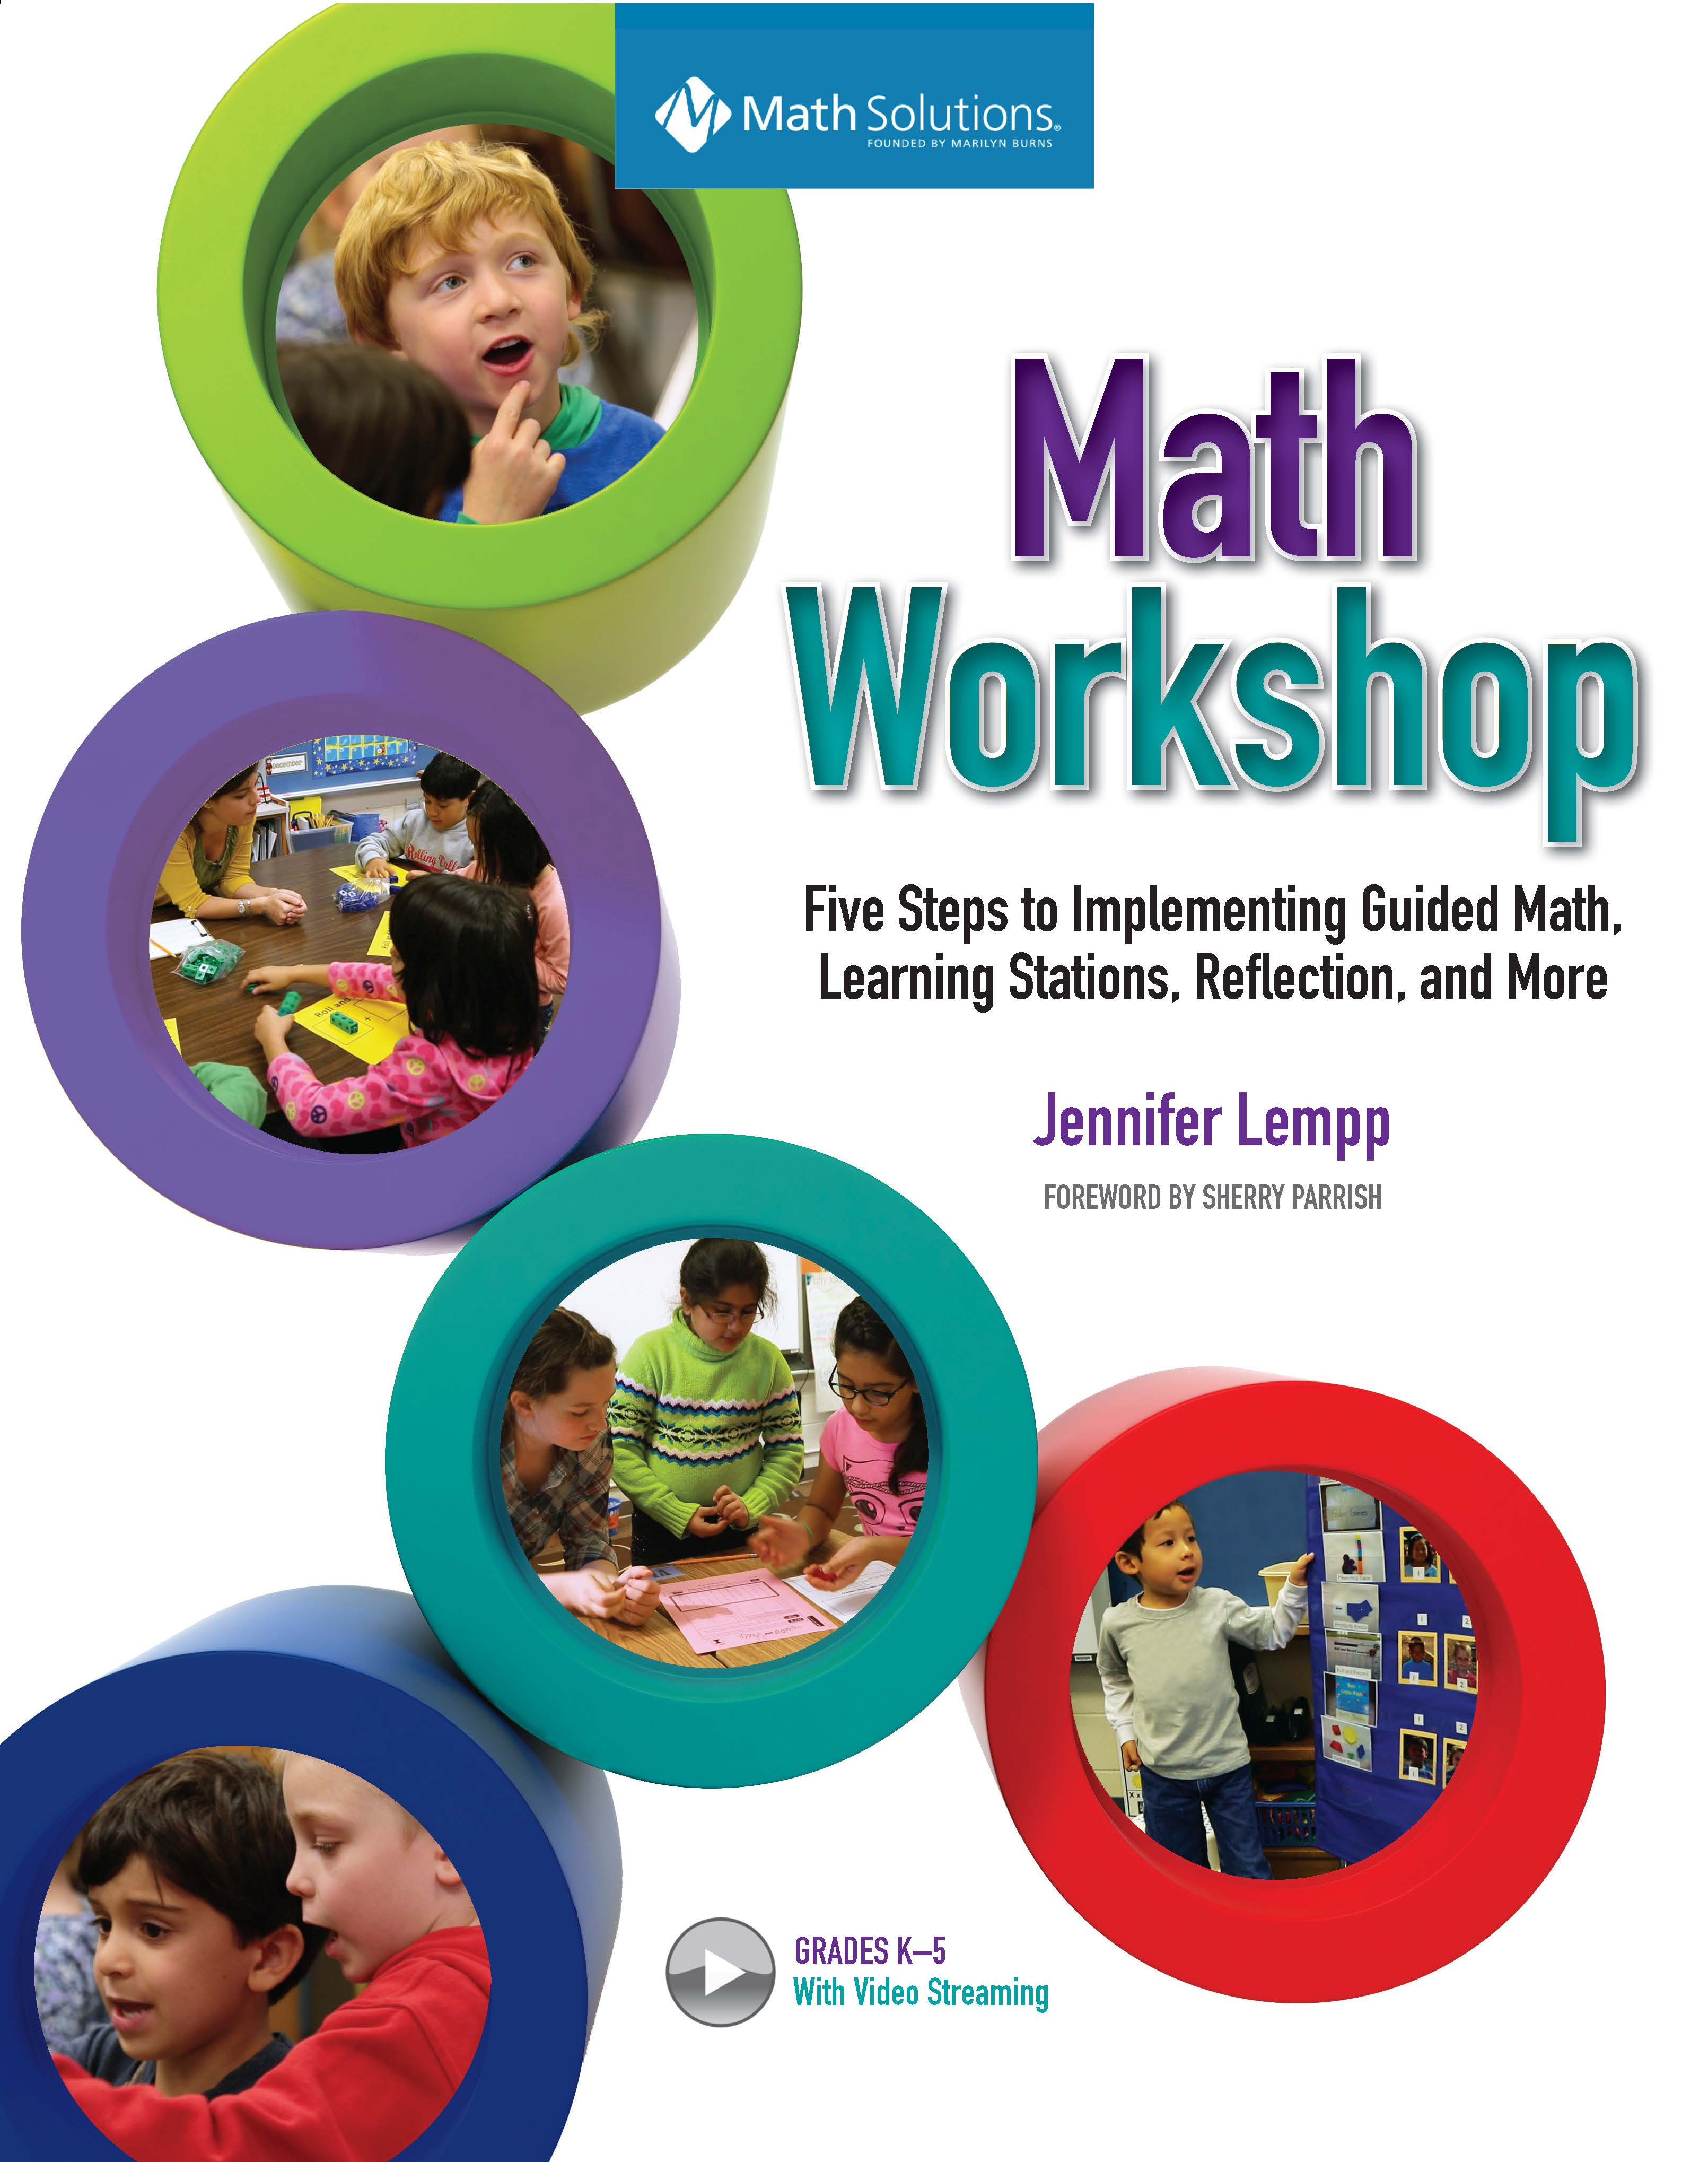 Math Workshop by Jennifer Lempp